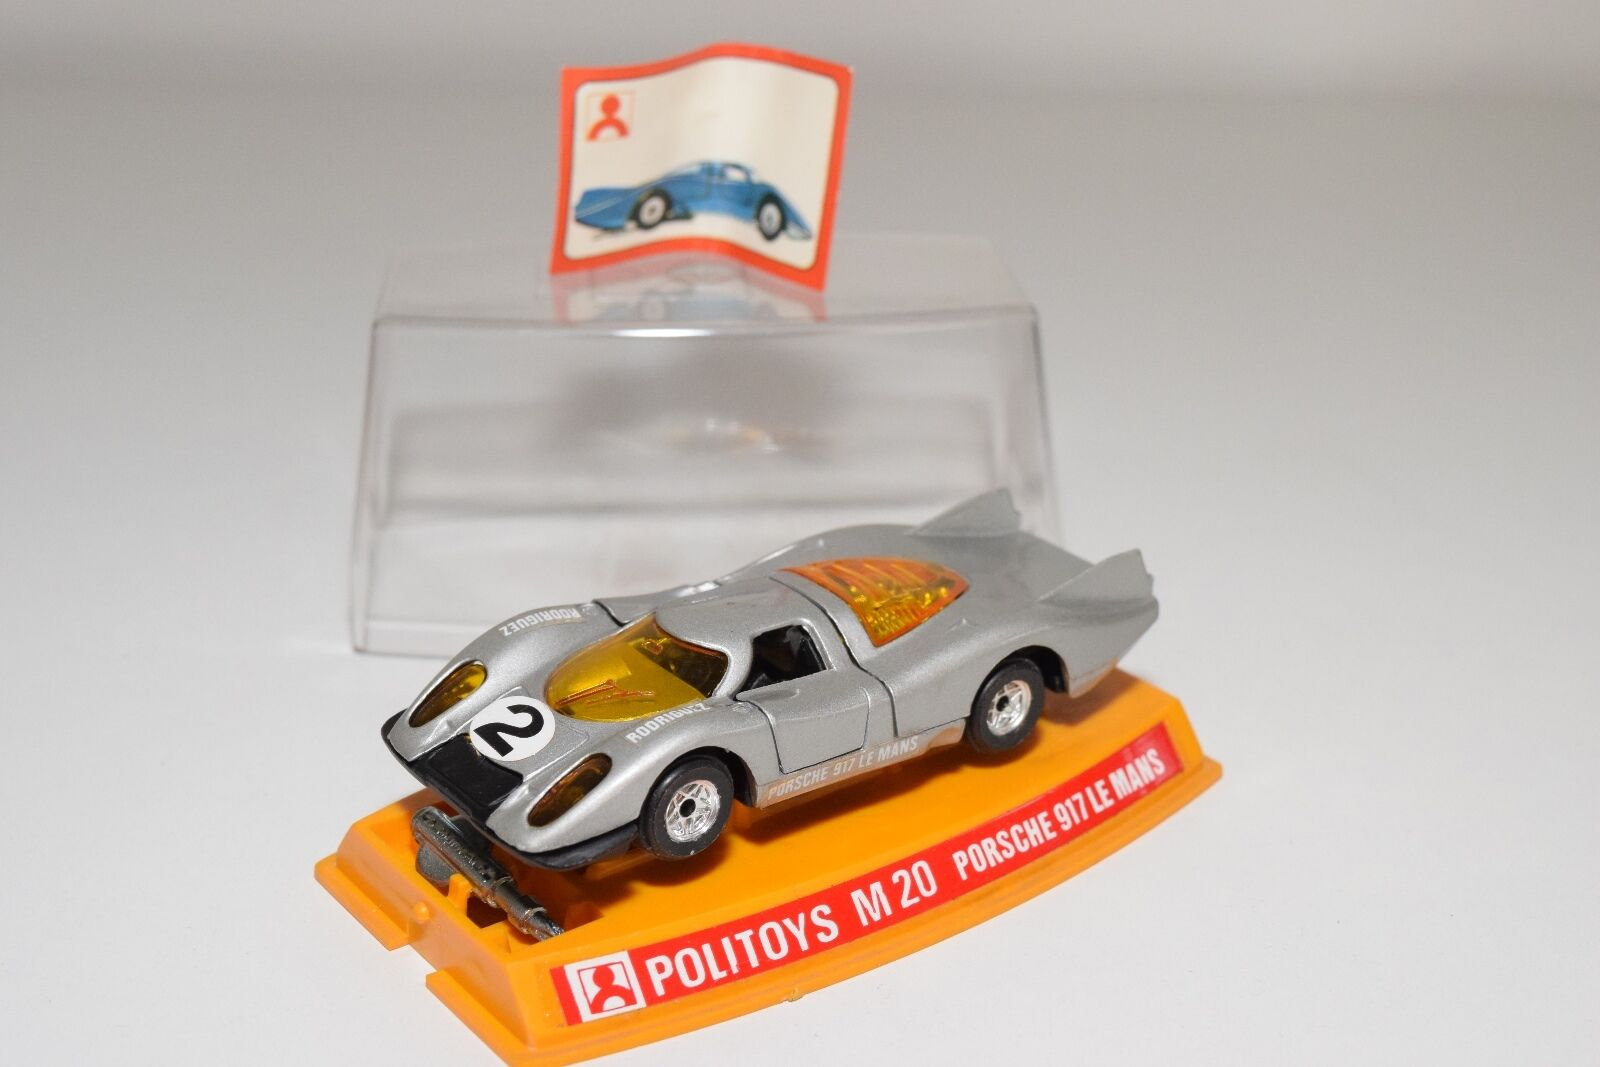 + POLITOYS M20 M 20 PORSCHE 917 LE MANS METALLIC GREY VERY NEAR MINT BOXED